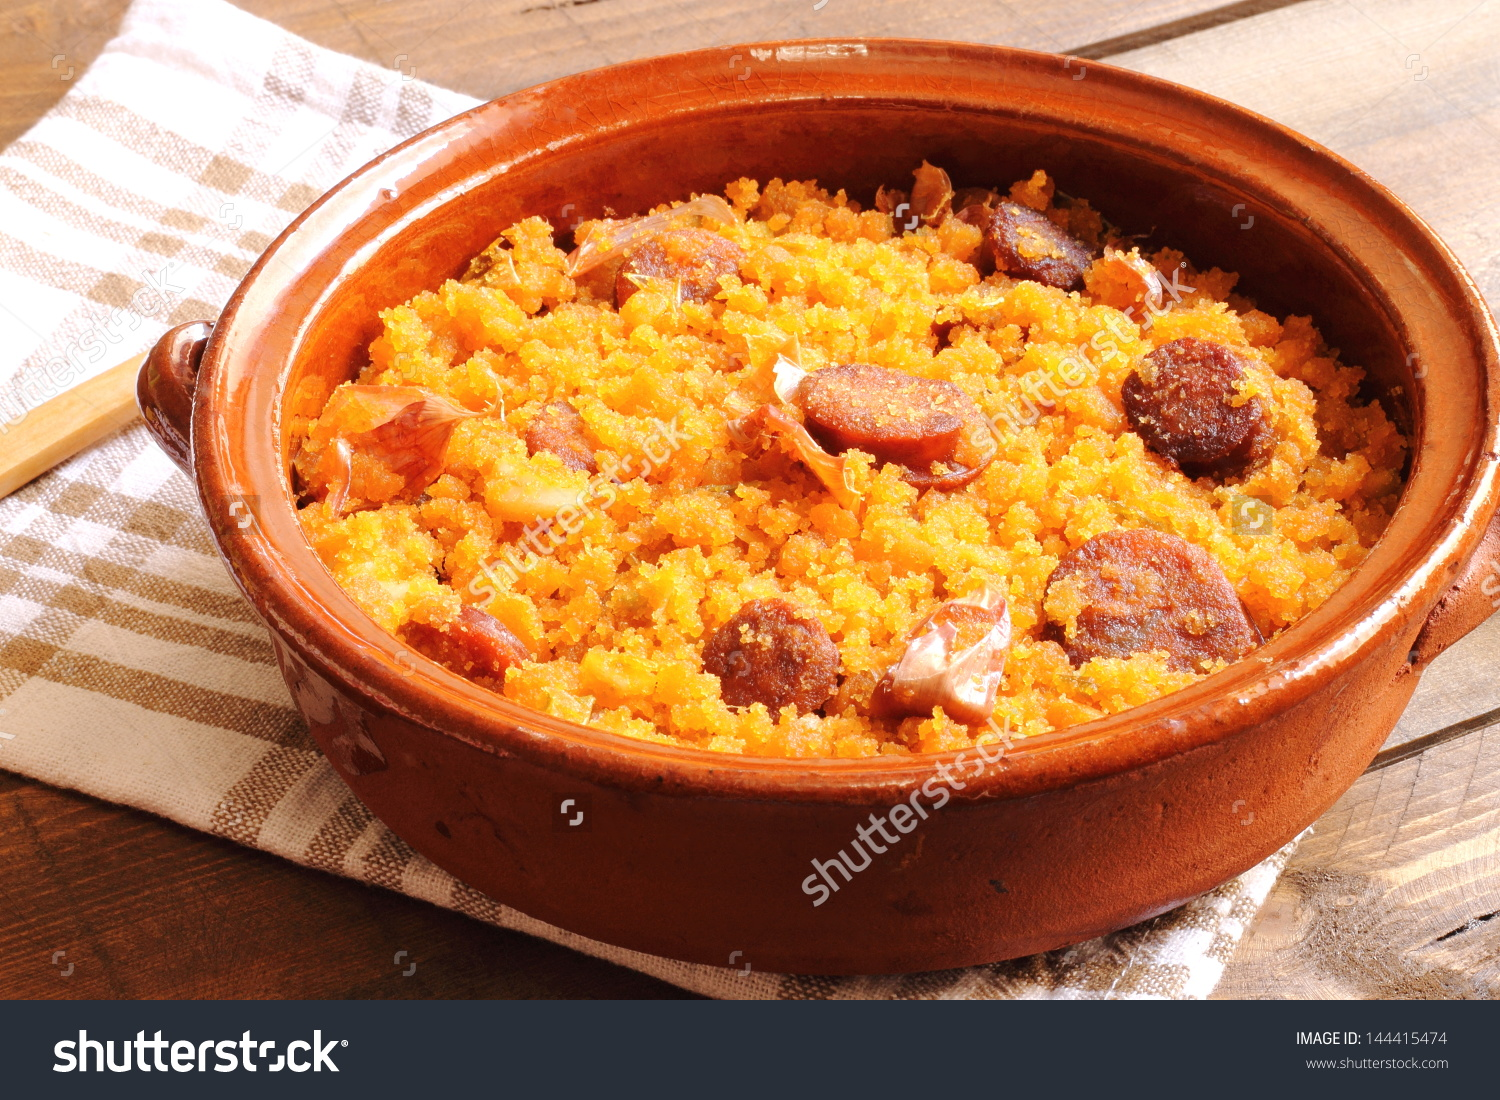 Migas Con Chorizo Traditional Spanish Recipe Stock Photo 144415474.